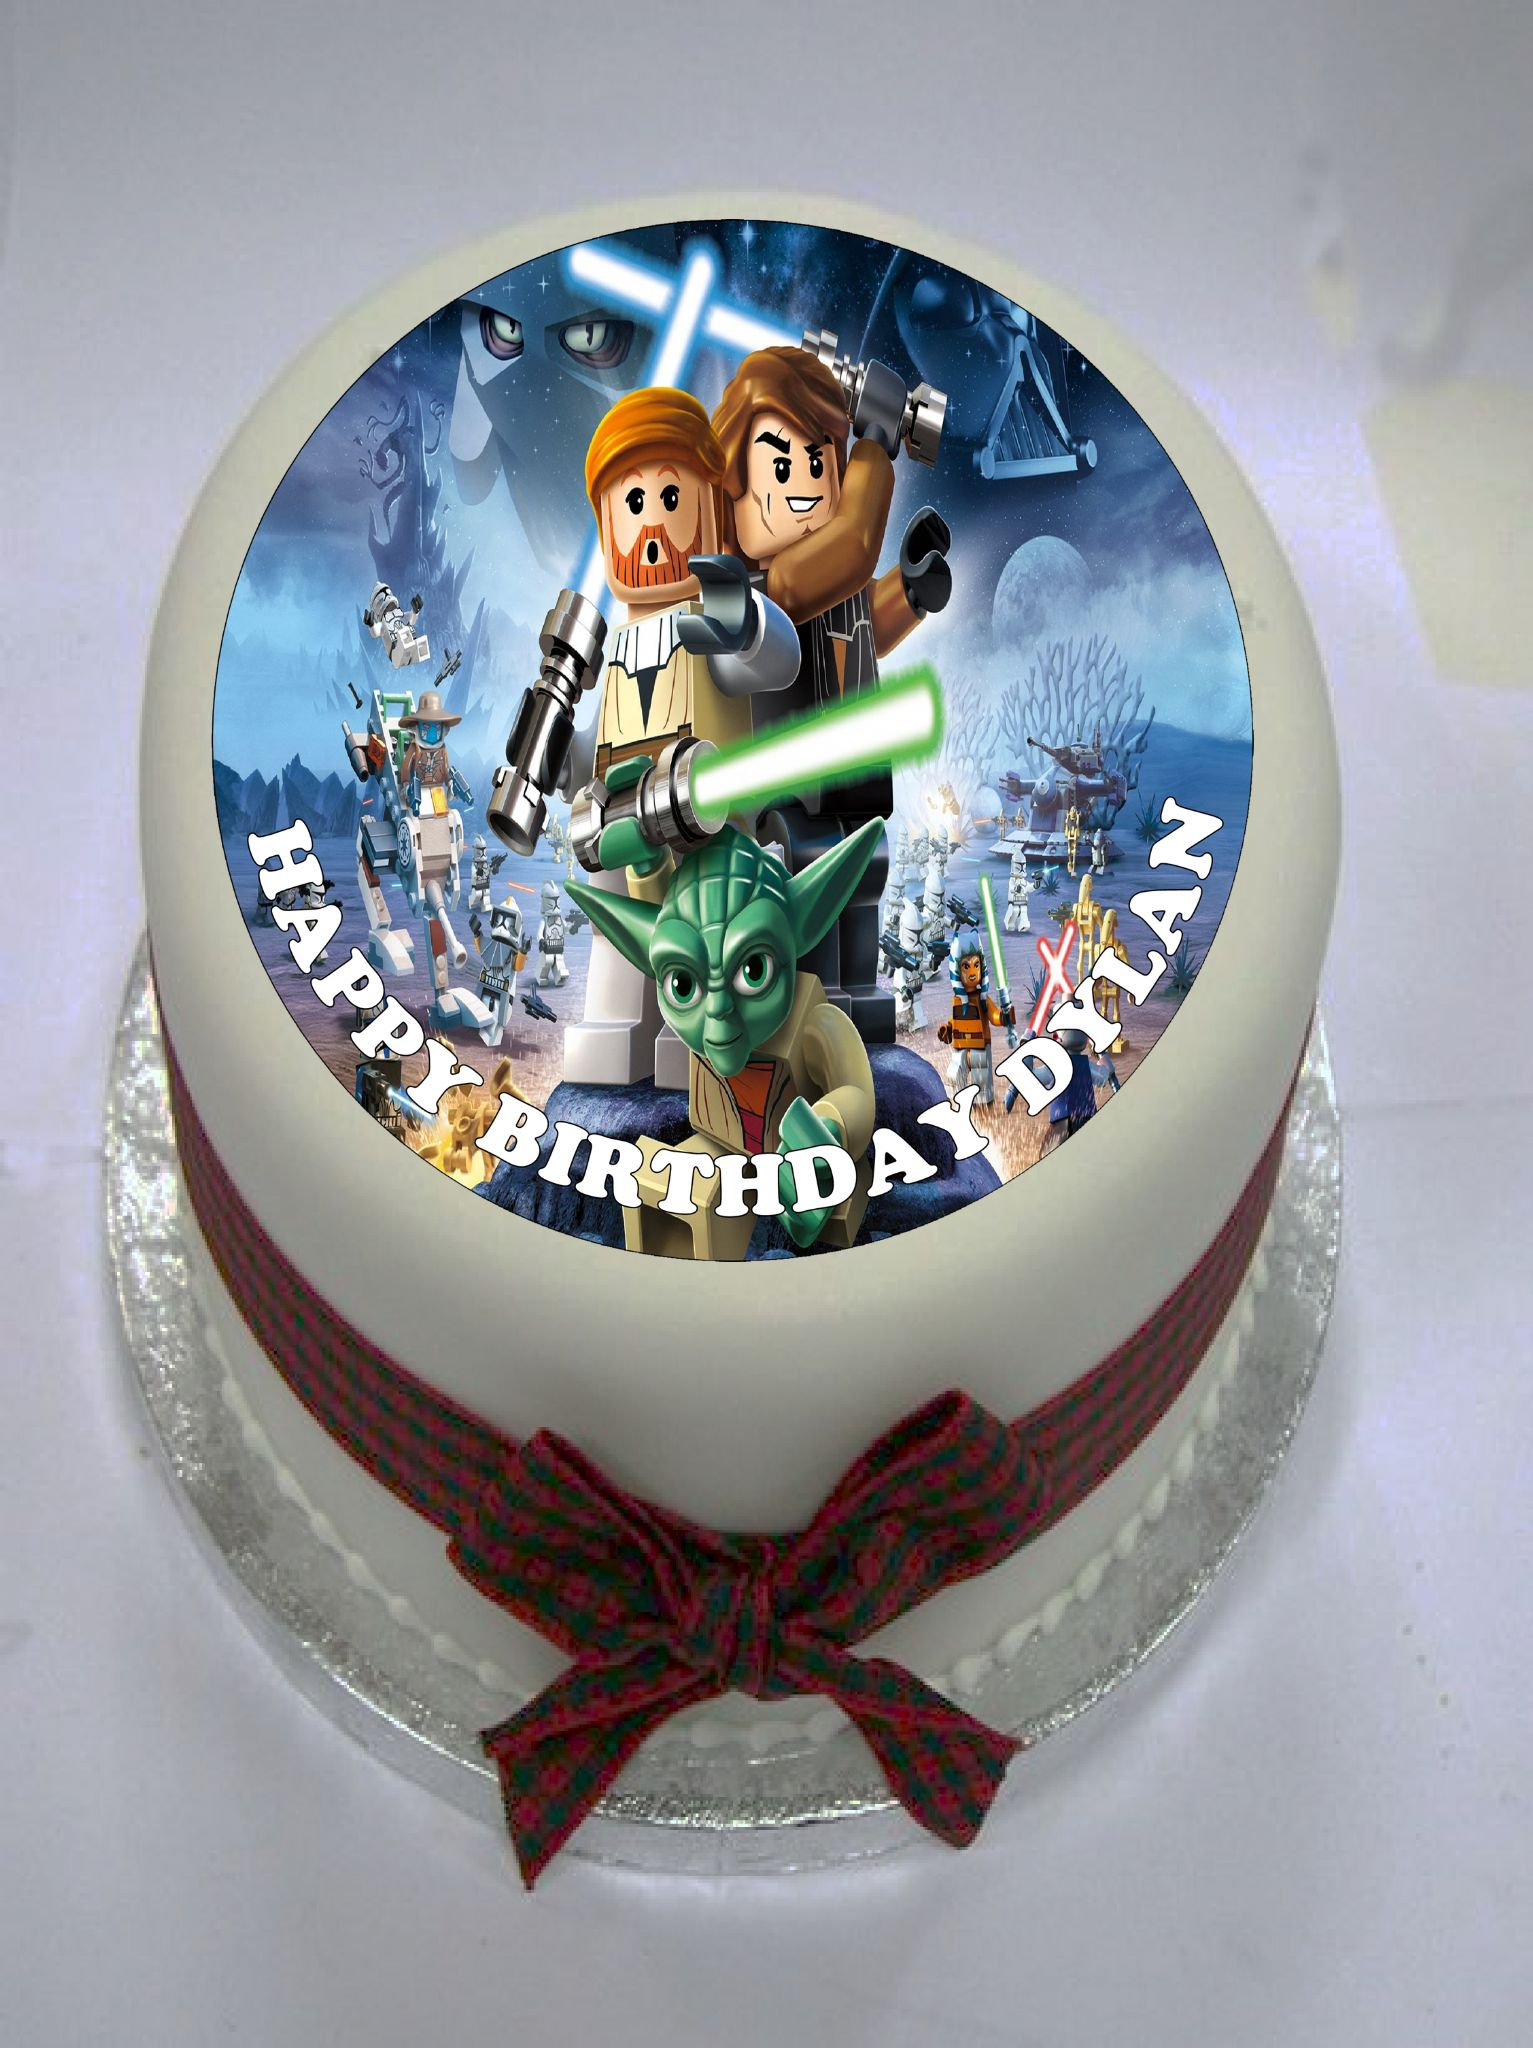 Lego Star Wars Edible Cake Topper